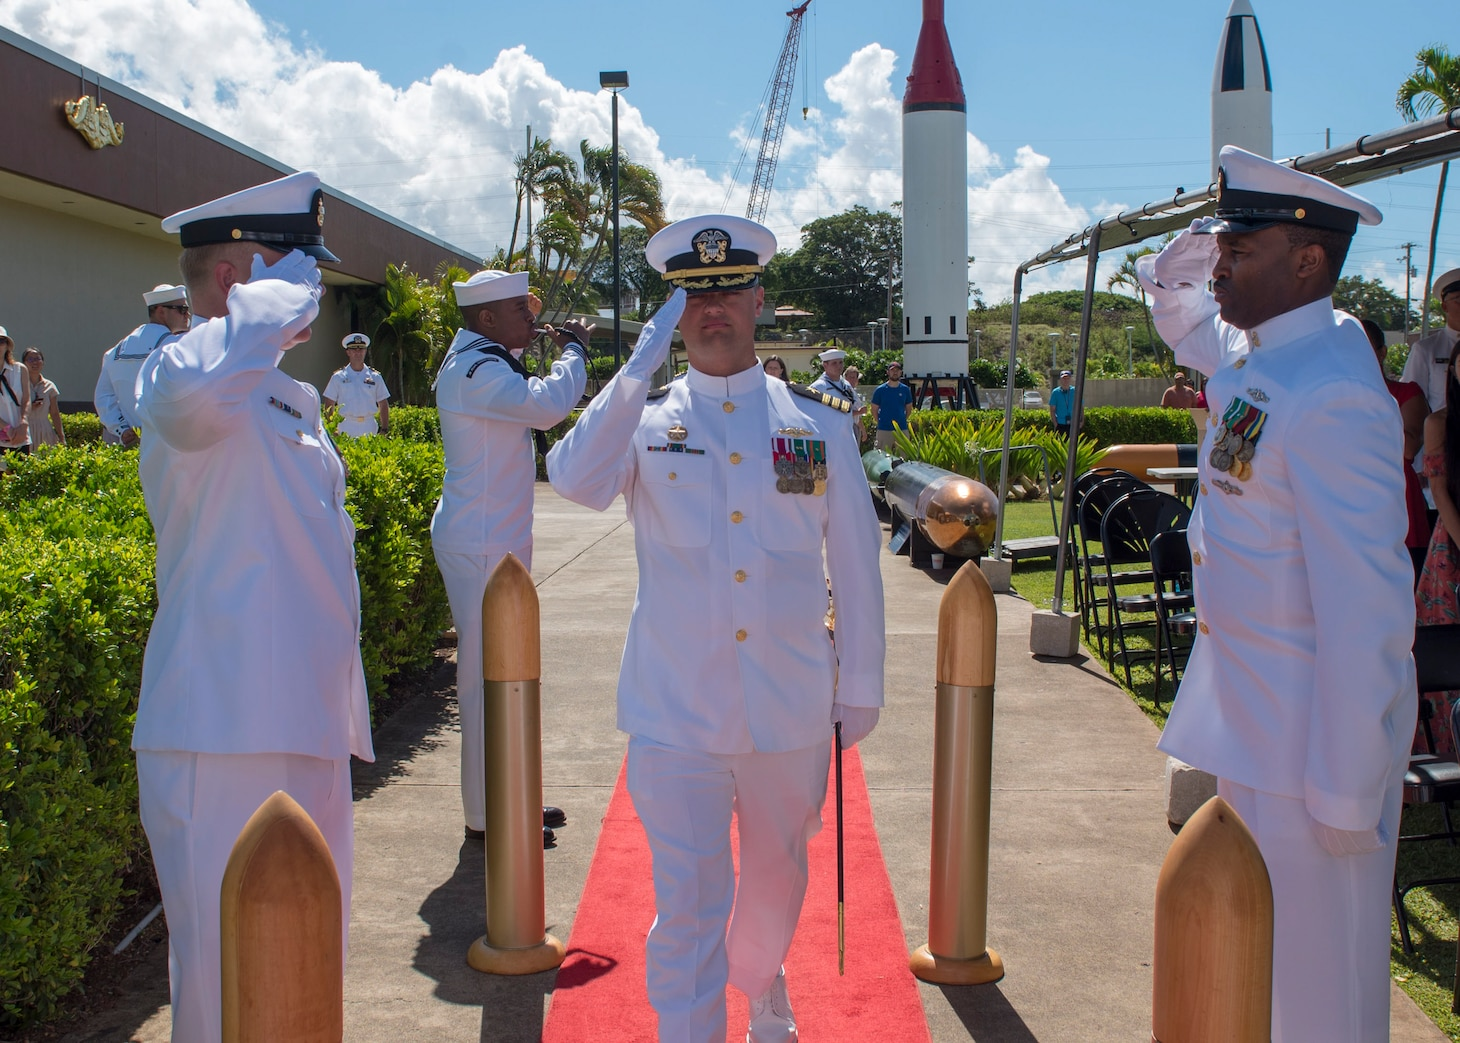 PEARL HARBOR (Aug. 31, 2018) - Cmdr. Chance Litton is piped aboard during the Los Angeles-class fast-attack submarine USS Chicago (SSN 721) change of command ceremony at the USS Bowfin Submarine Museum and Park in Pearl Harbor, Hawaii, Aug. 31. (U.S. Navy photo by Mass Communication Specialist 2nd Class Shaun Griffin/Released)